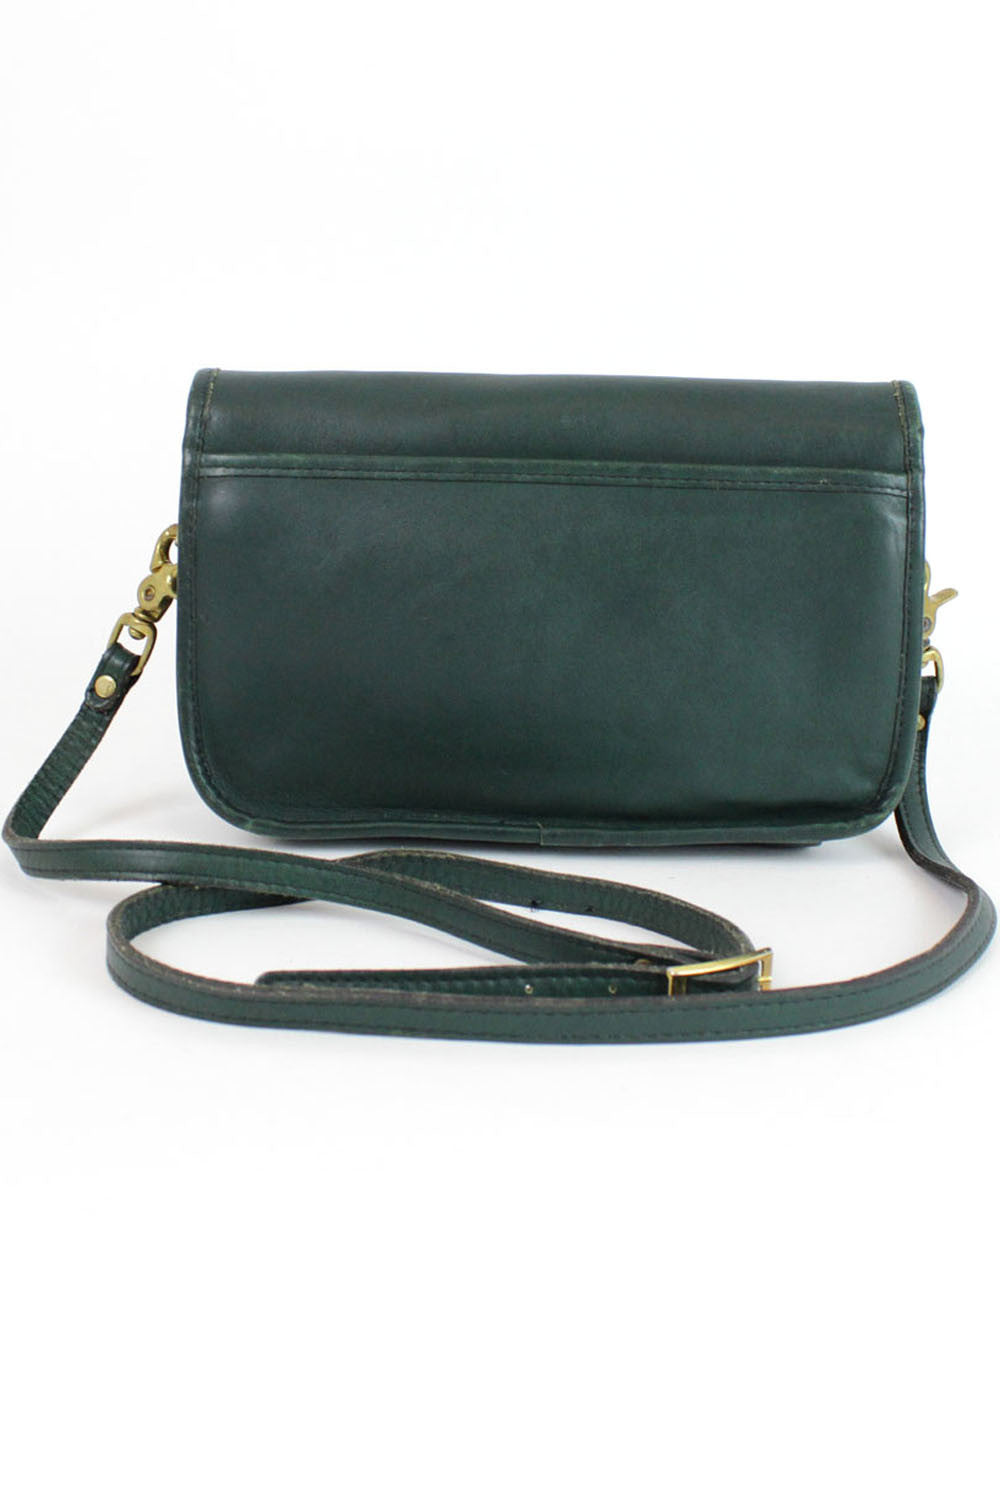 hunter green turnlock bag